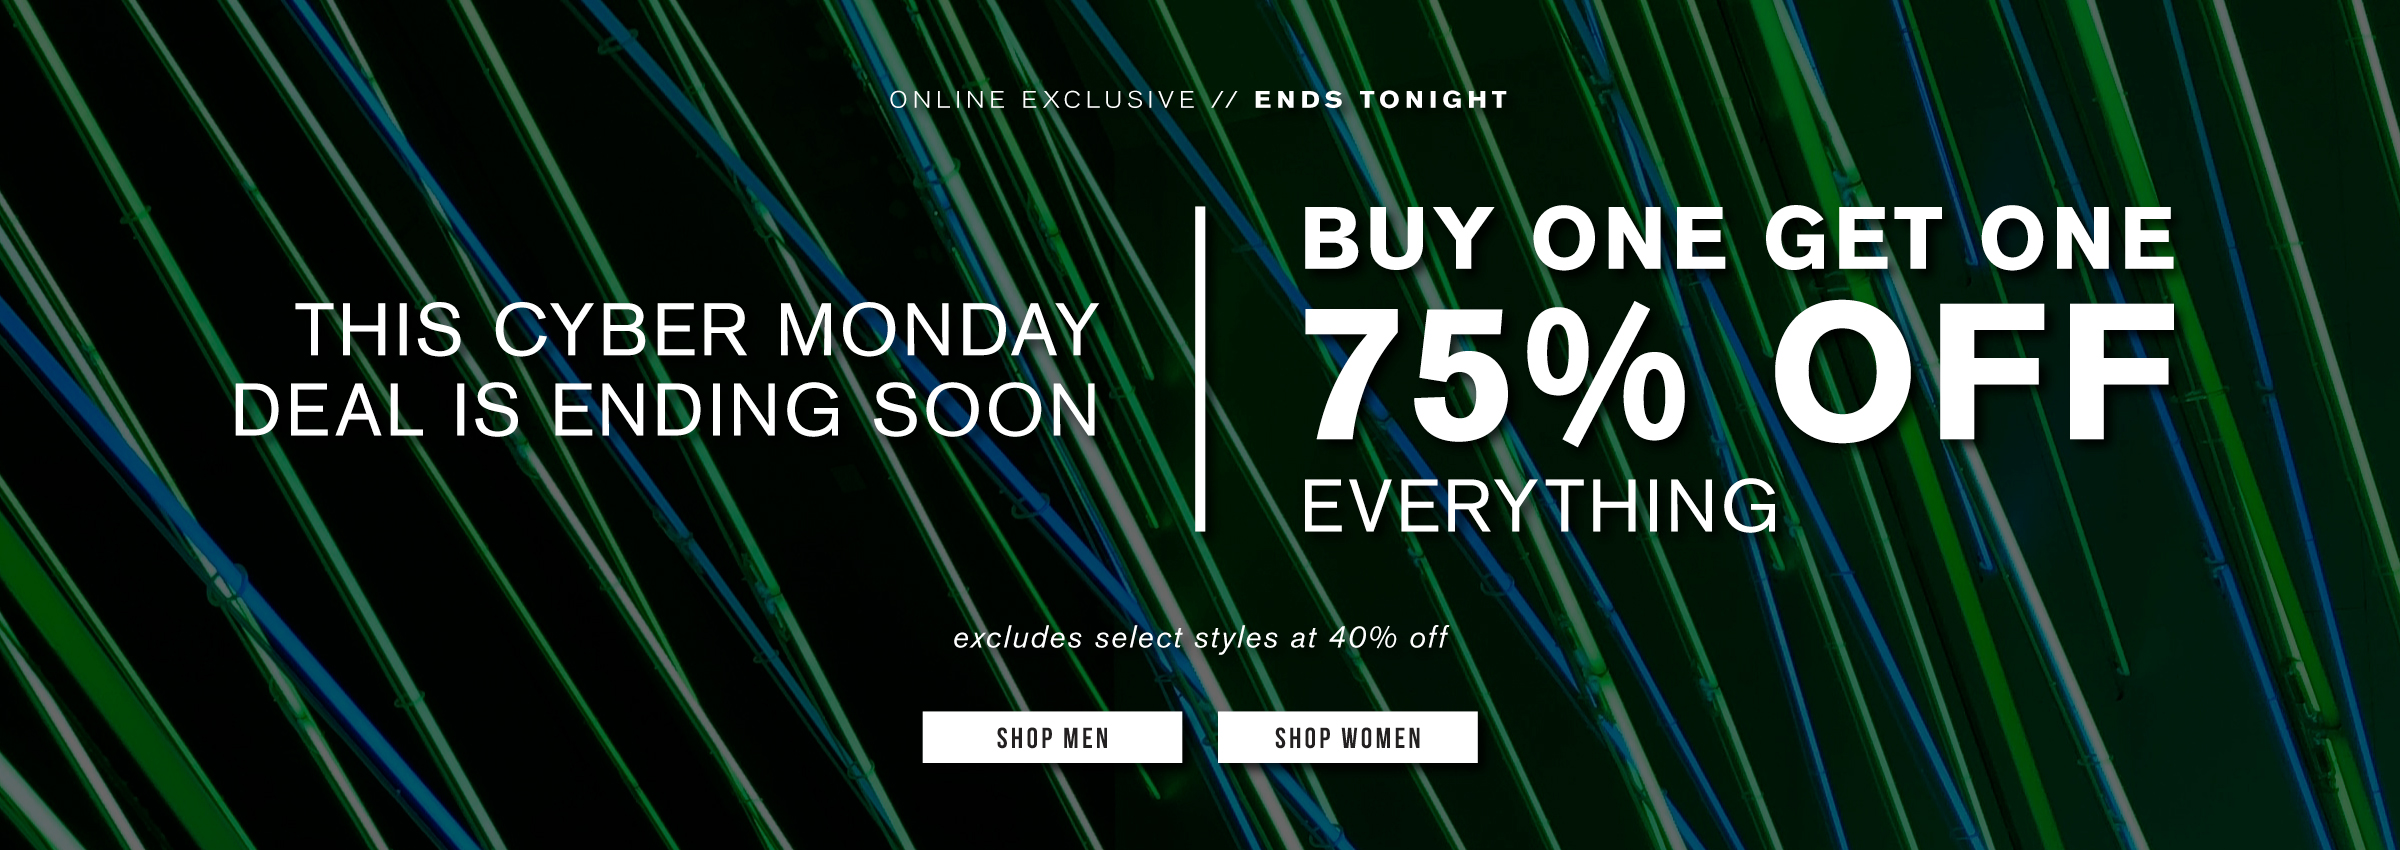 Online exclusive. Ends tonight. This Cyber Monday deal is ending soon. Buy one get one 75% off everything. Excludes select styles at 40% off. Shop men. Shop women.